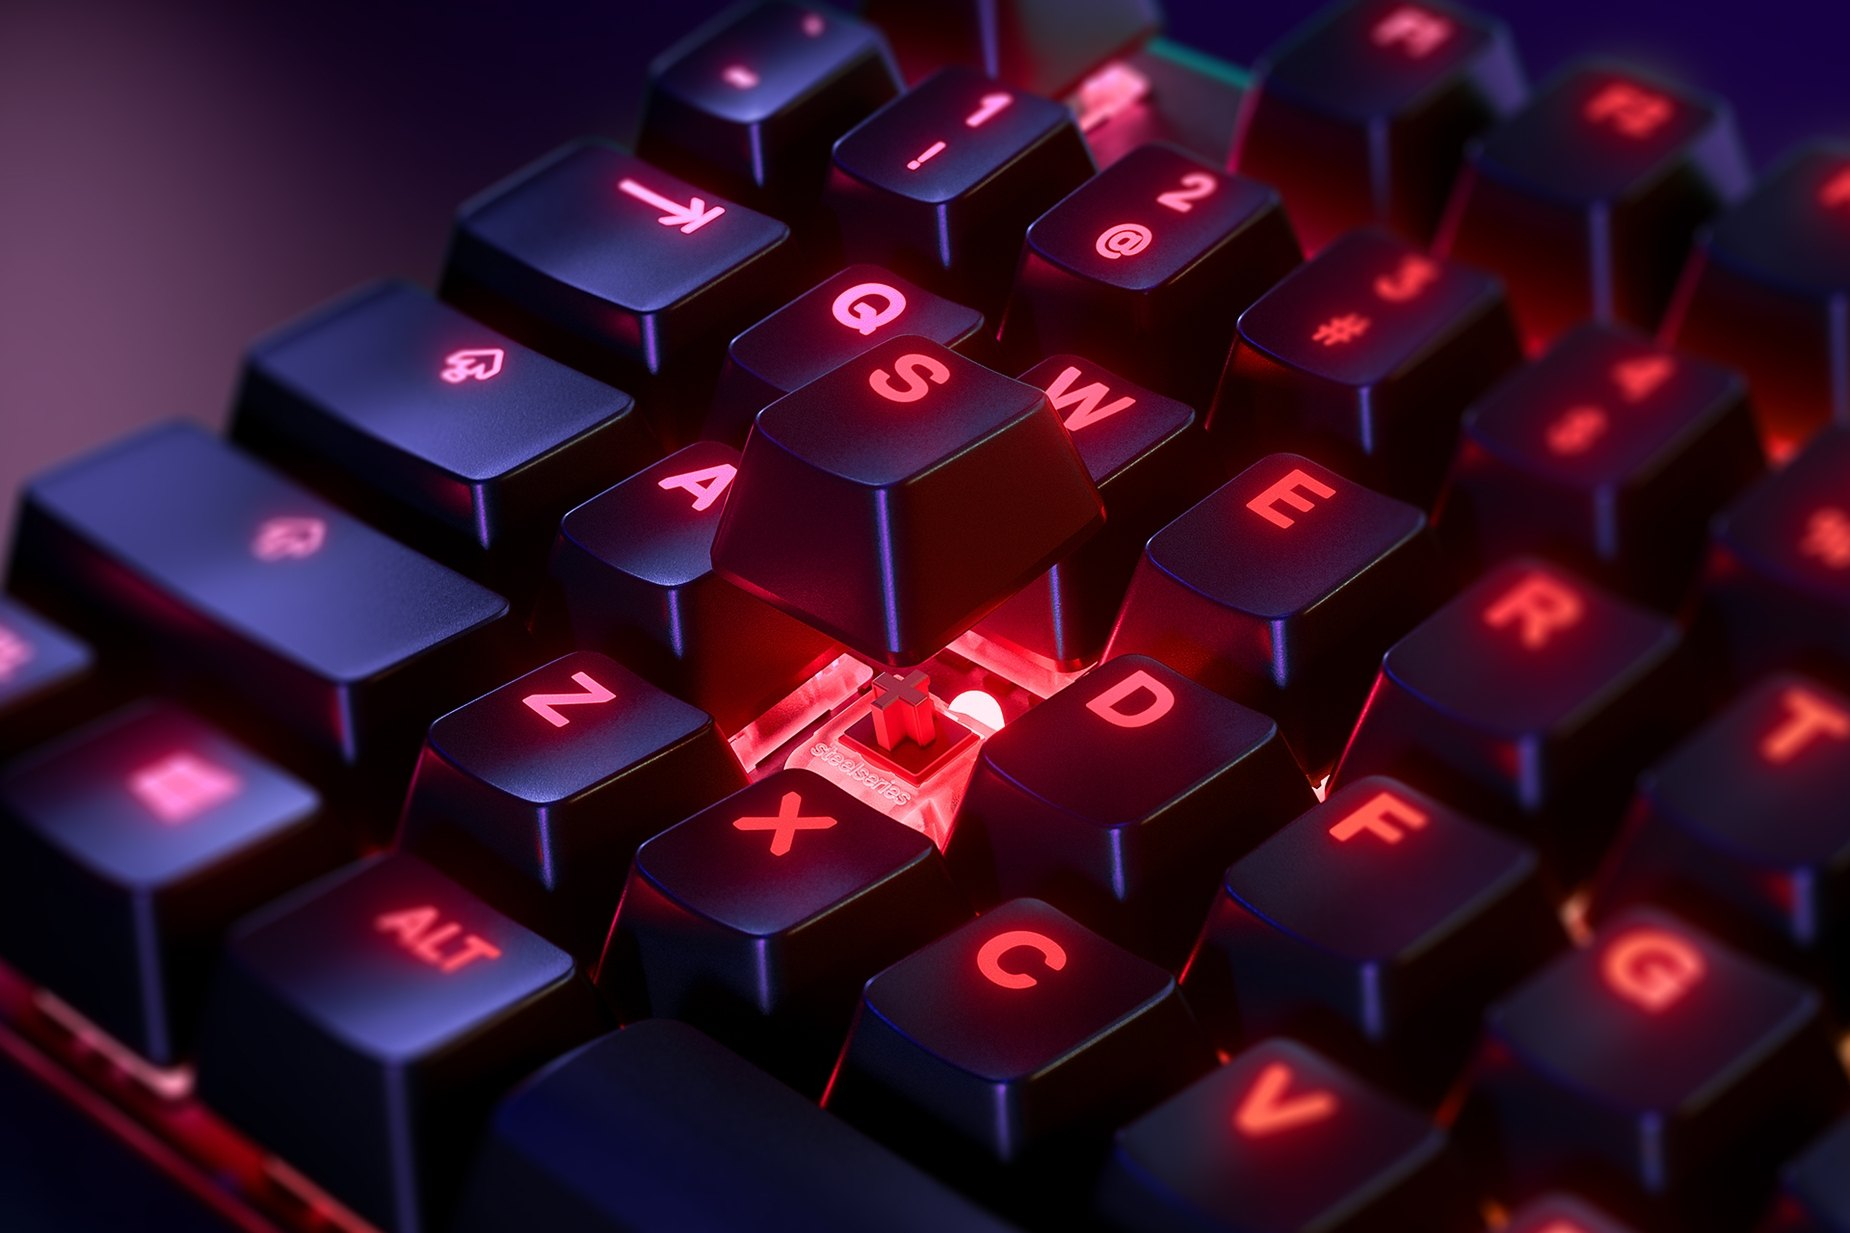 Zoomed in view of a single key on the Nordic - Apex 7 (Kırmızı Anahtar) gaming keyboard, the key is raised up to show the SteelSeries QX2 Mechanical RGB Switch underneath